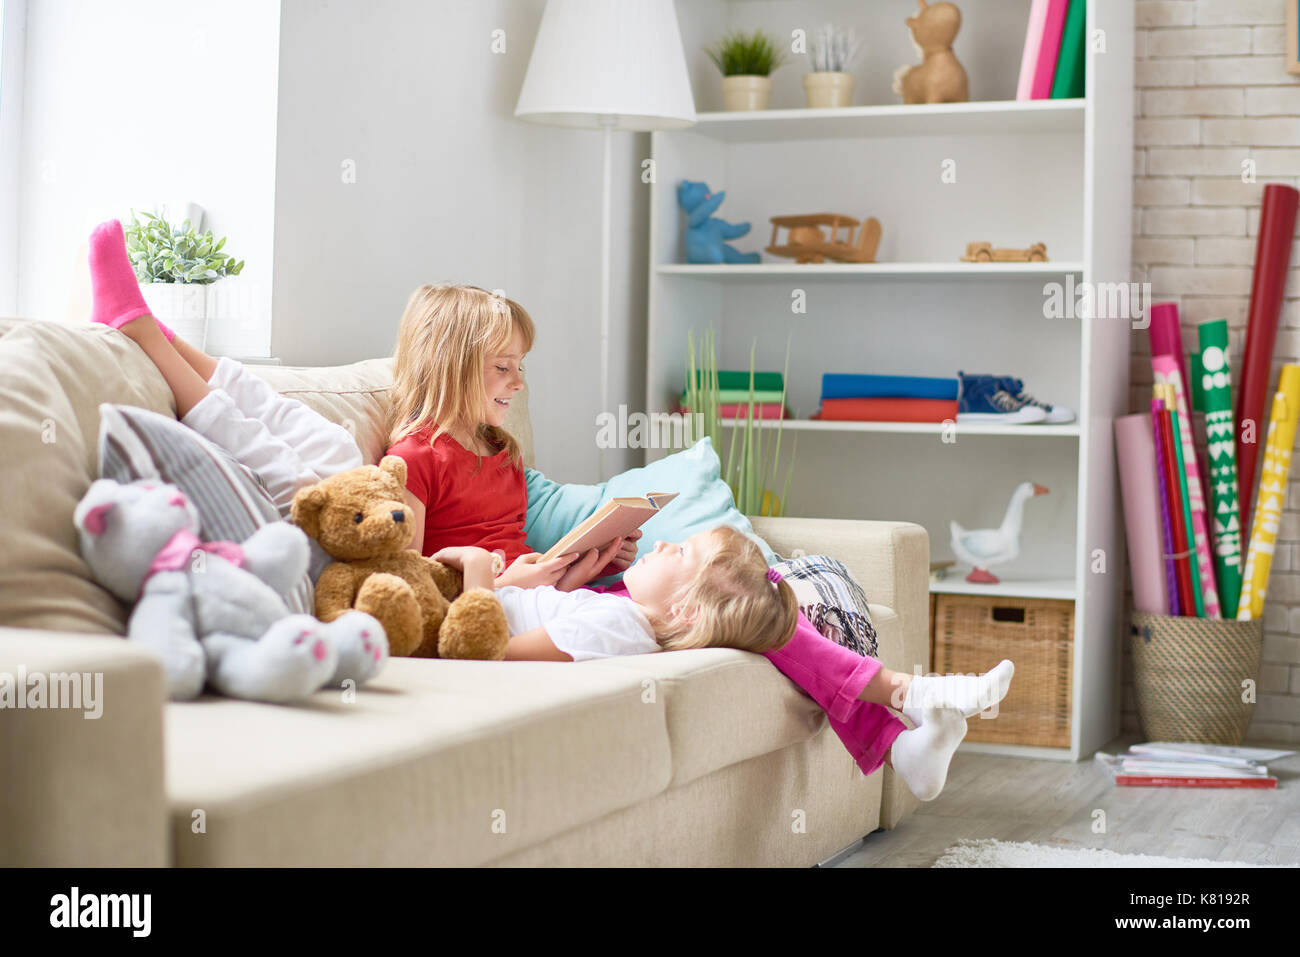 Reading Aloud to Little Sister - Stock Image